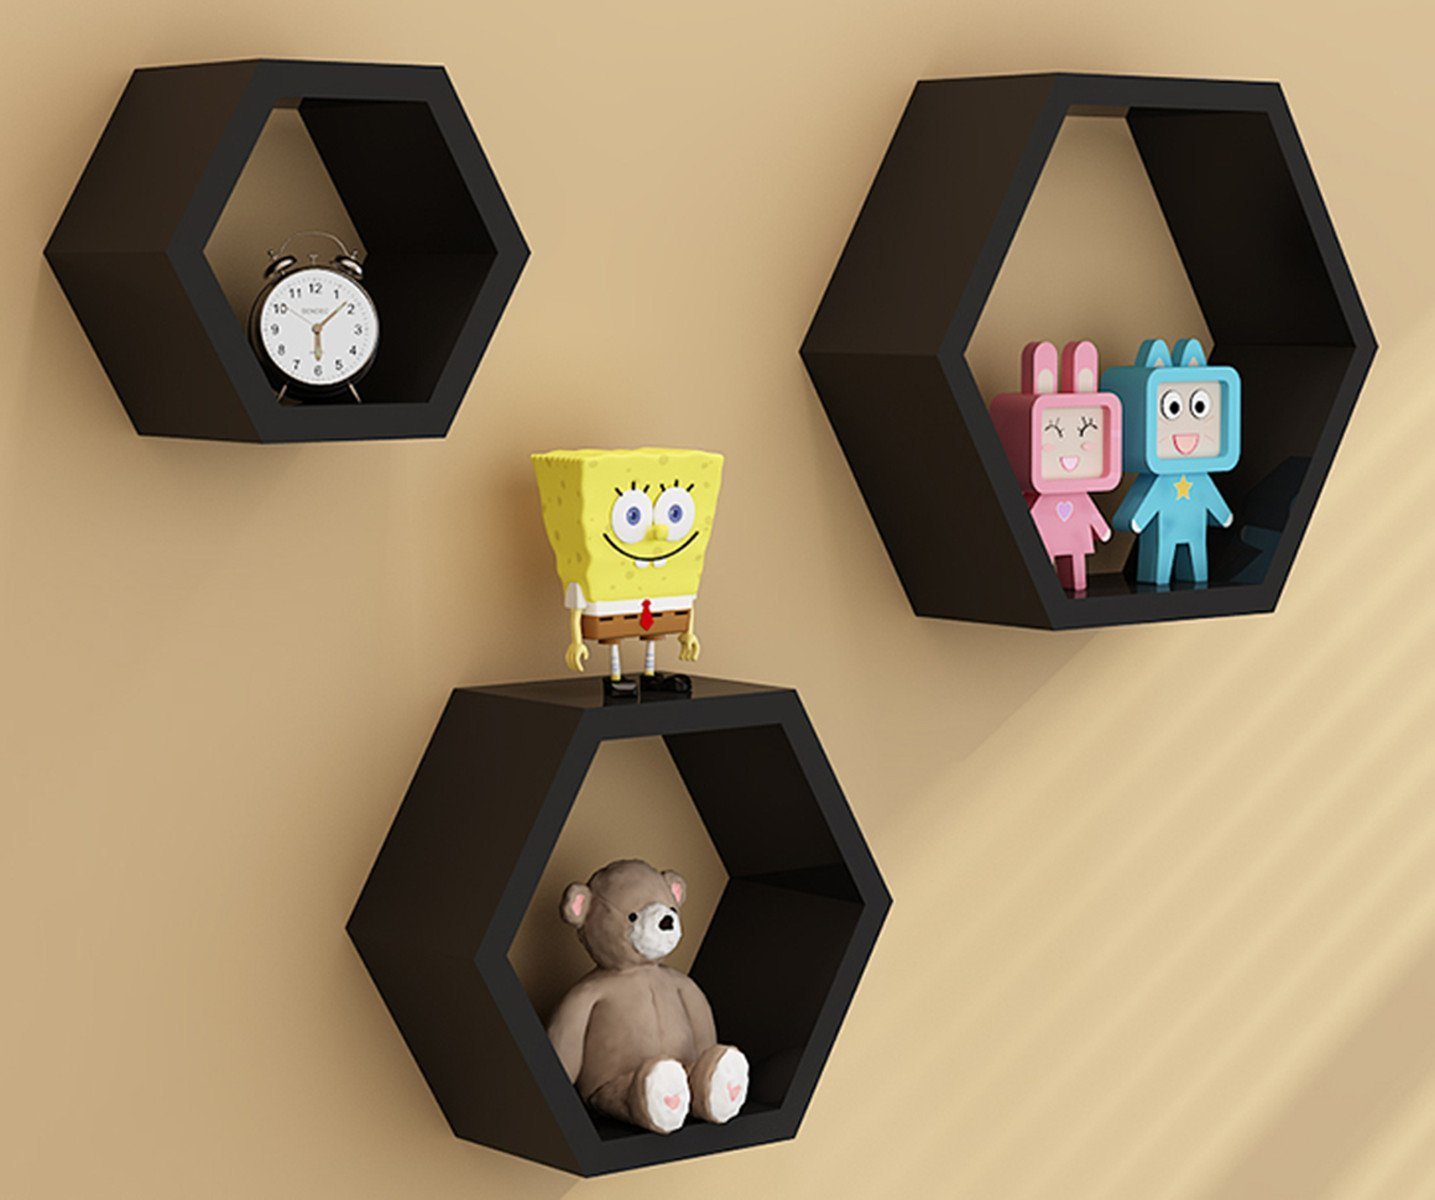 Home DIY Decorative Wall Floating Honeycomb Shelves Hexagonal ...